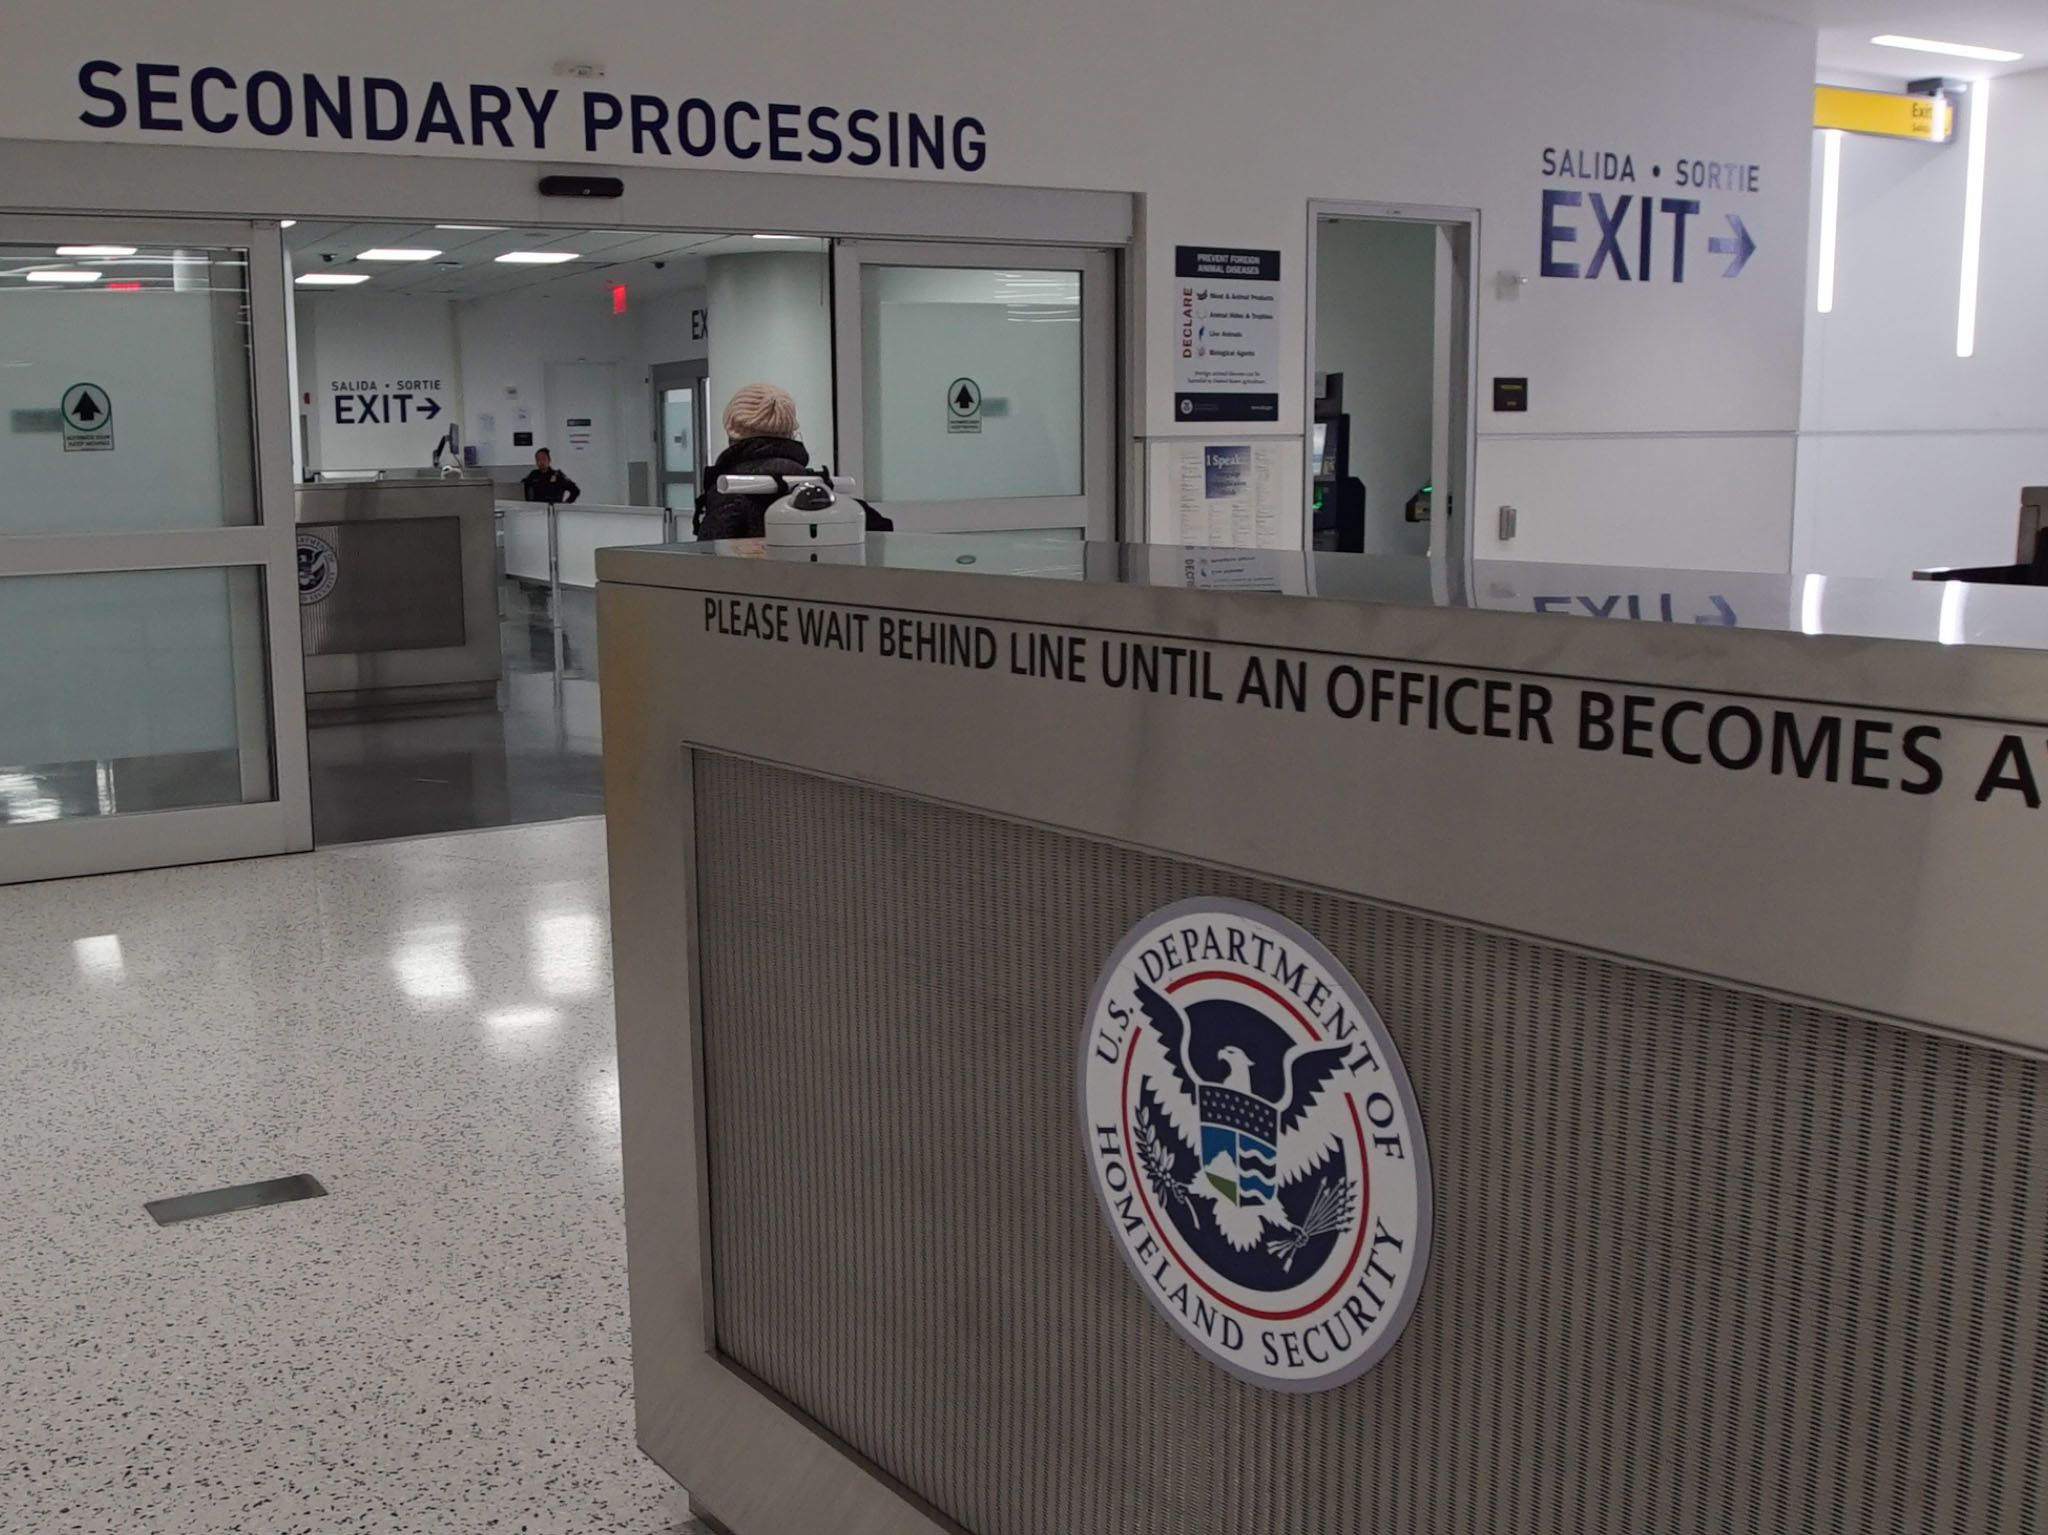 Entrance to Secondary Processing at JFK airport. This image is from To Catch A Smuggler. [Photo of the day - March 2021]